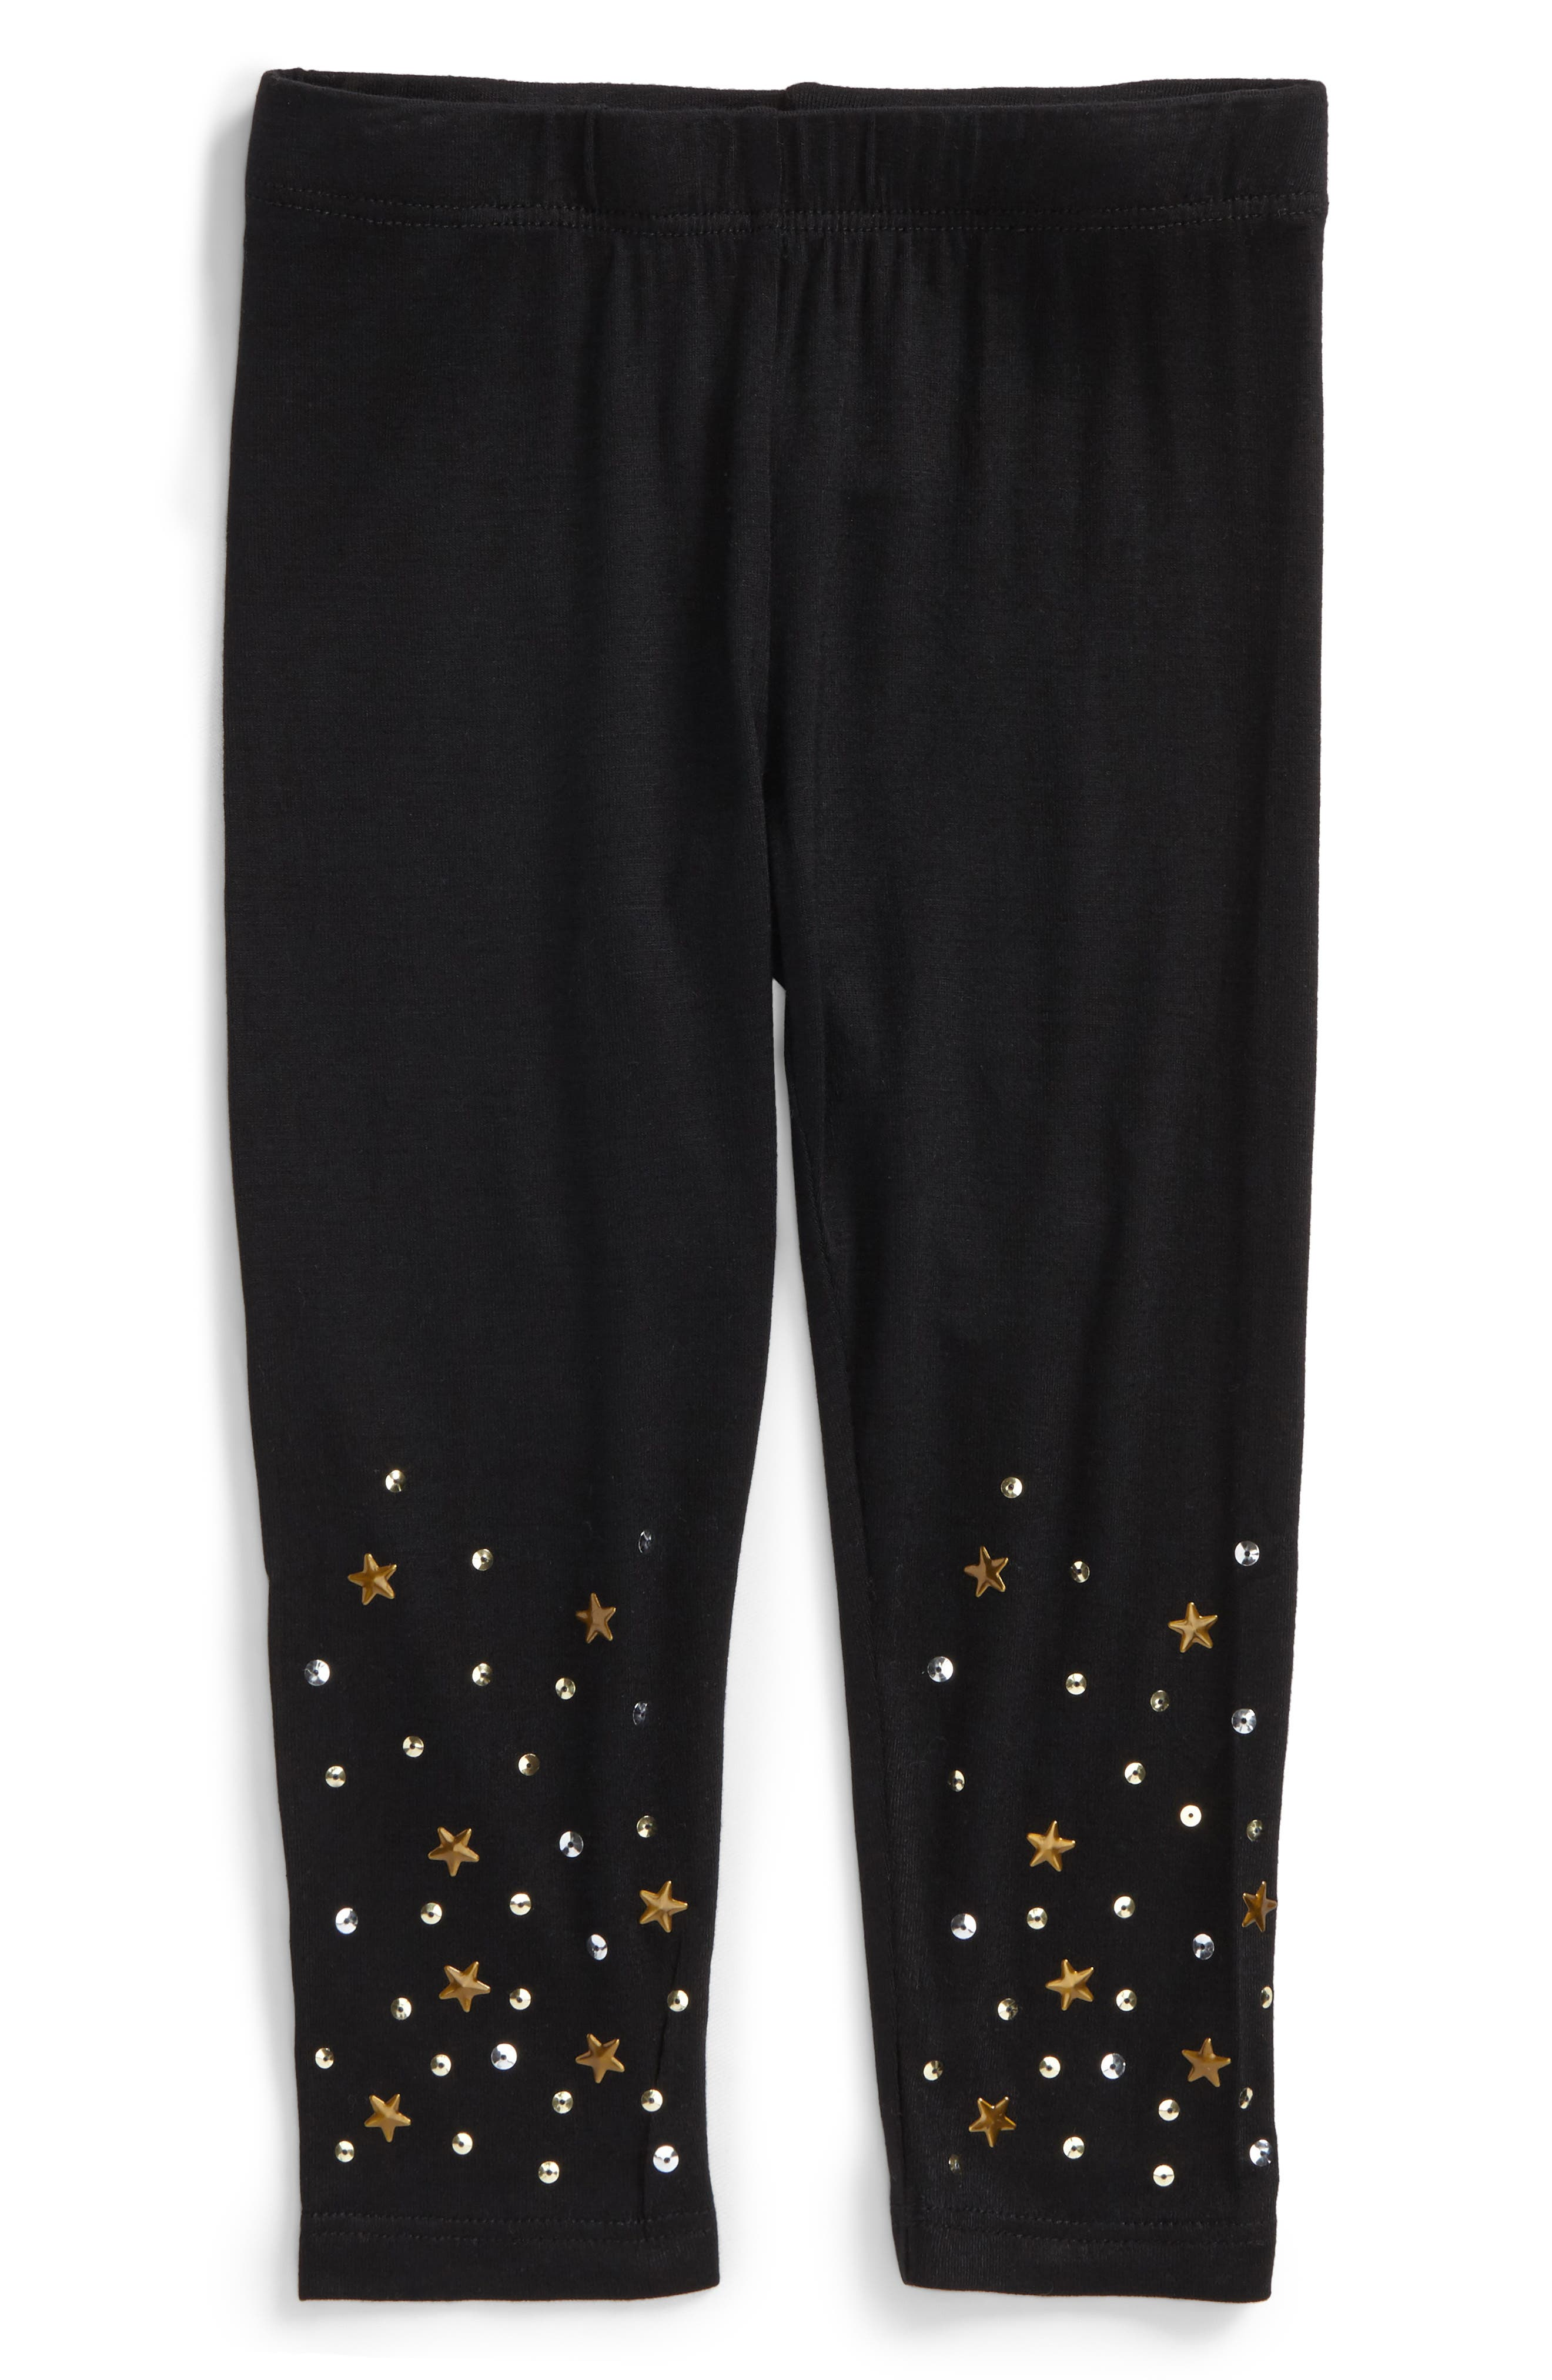 Alternate Image 1 Selected - Truly Me Star & Sequin Leggings (Baby Girls)